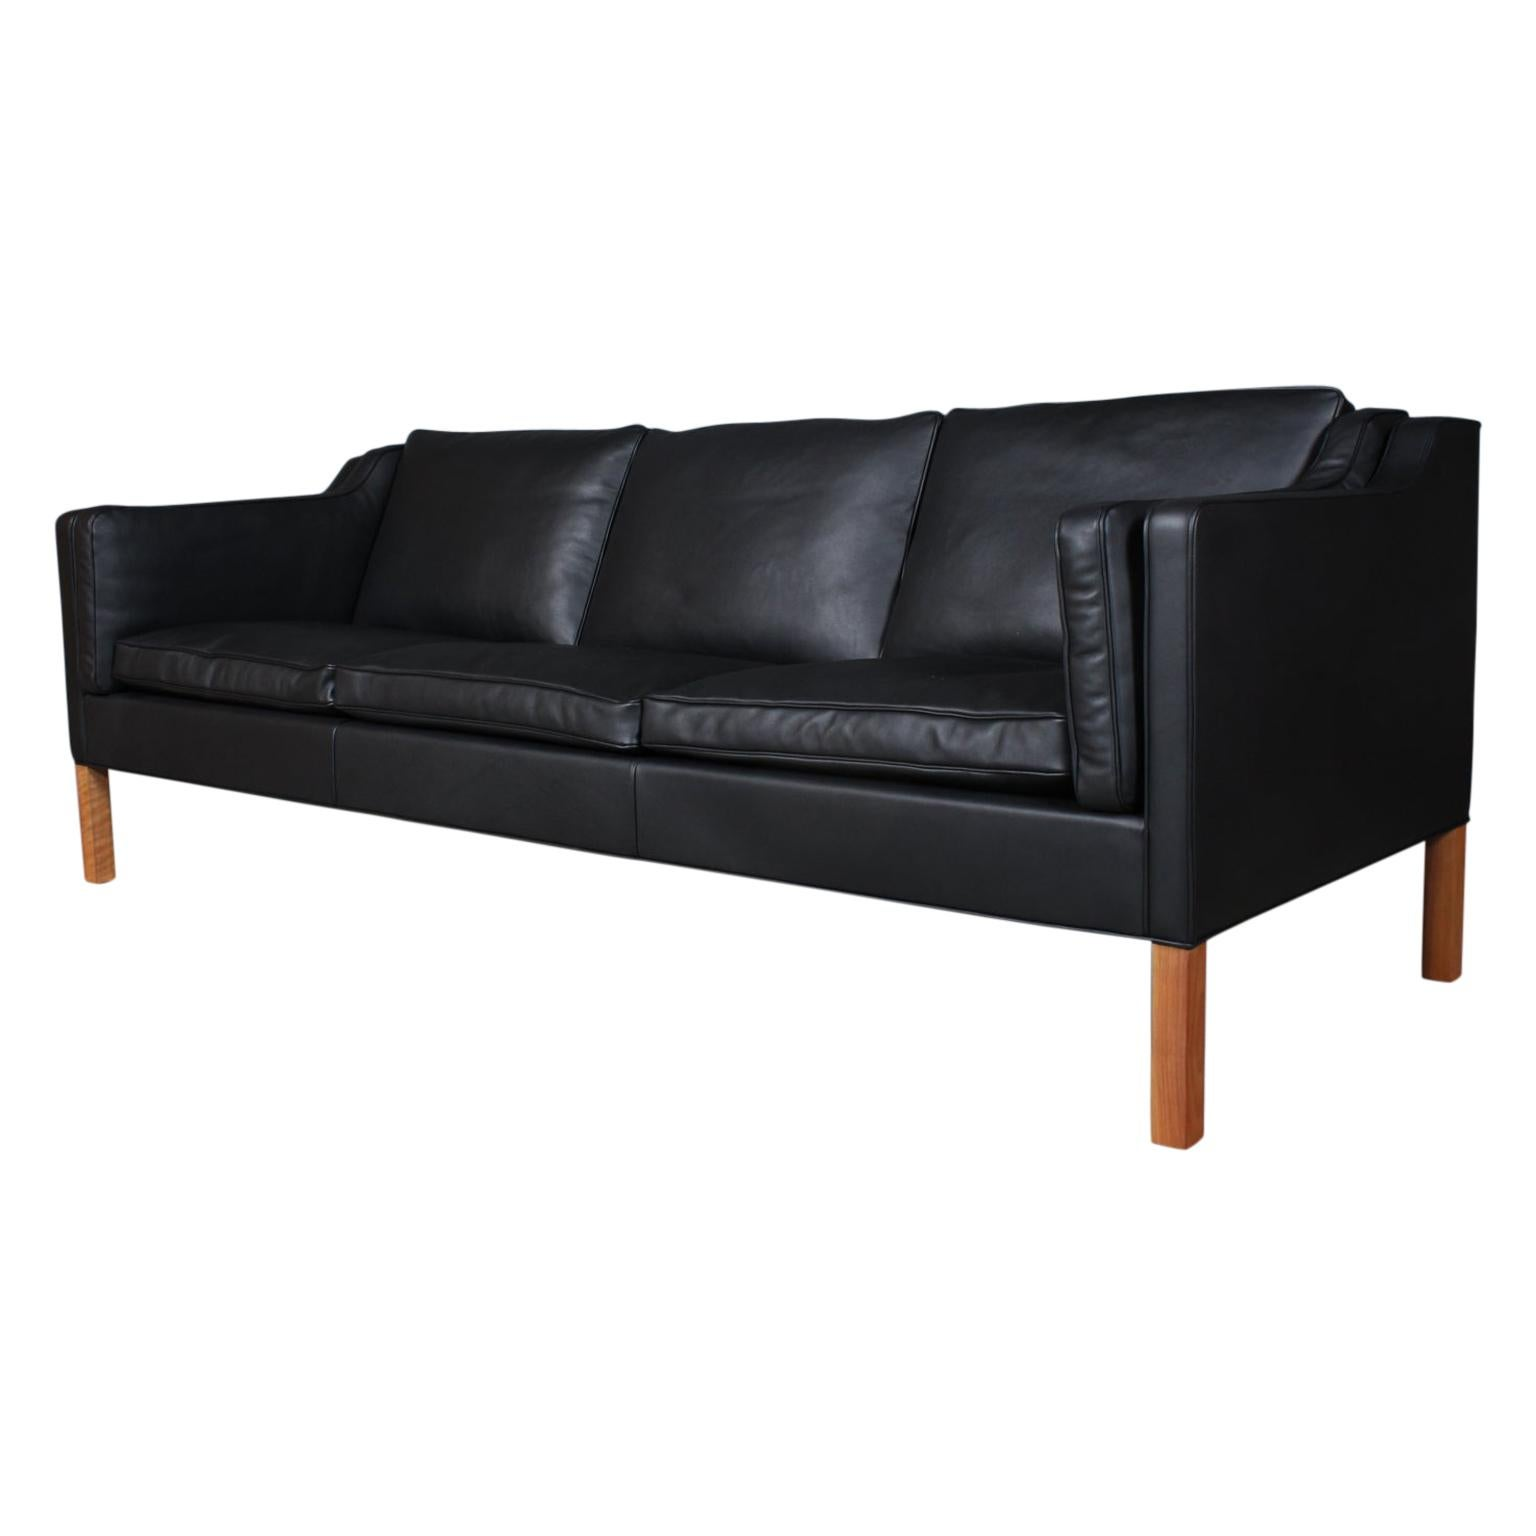 Børge Mogensen Three-Seat Sofa, Model 2213